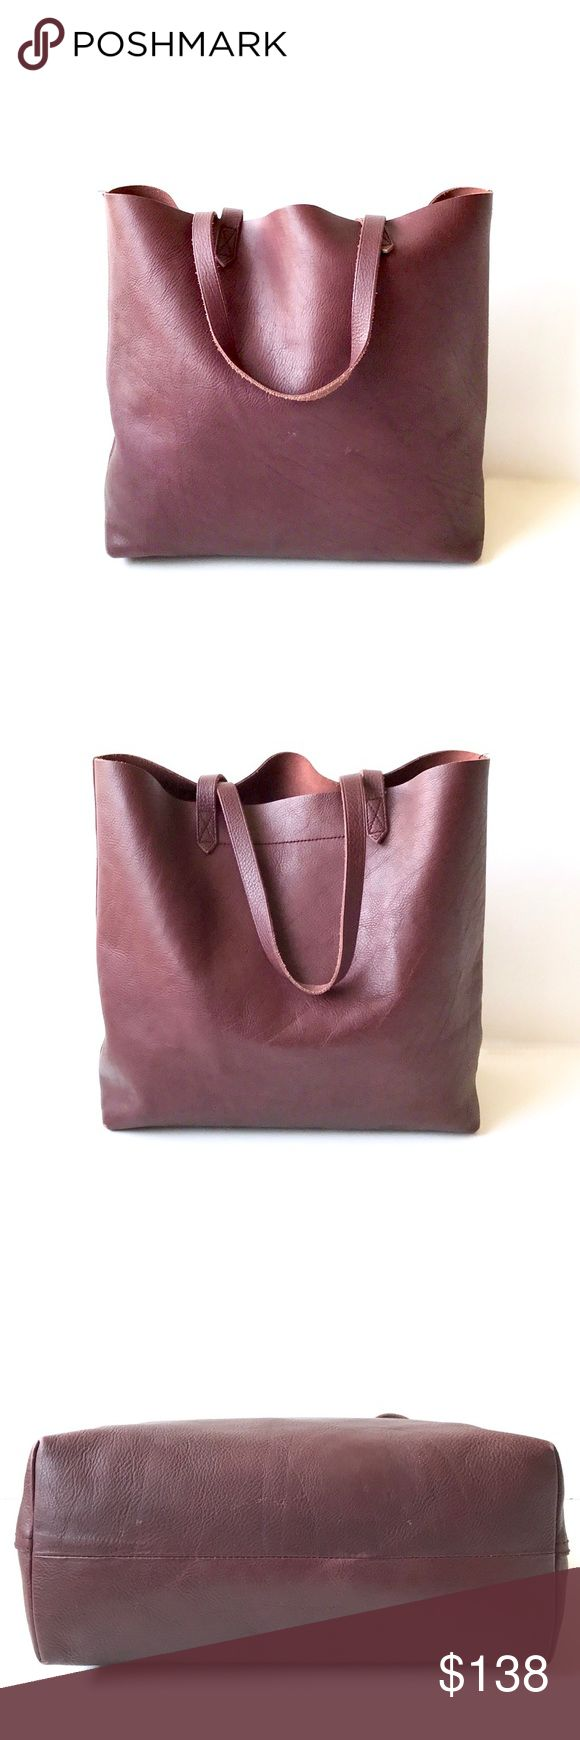 "Madewell • Transport Tote in Cabernet A large and spacious tote, perfect for your everyday essentials. Made of vegetable tanned leather, this lovely shade of cabernet will darken and age beautifully over time! An amazing color that is no longer sold online!   + 14"" W x 14"" H x 6"" D  + in great overall condition, a few light outer scuffs and corners show light wear; interior is smooth and clean + all photos taken by me, modeled photos from internet Madewell Bags Totes"